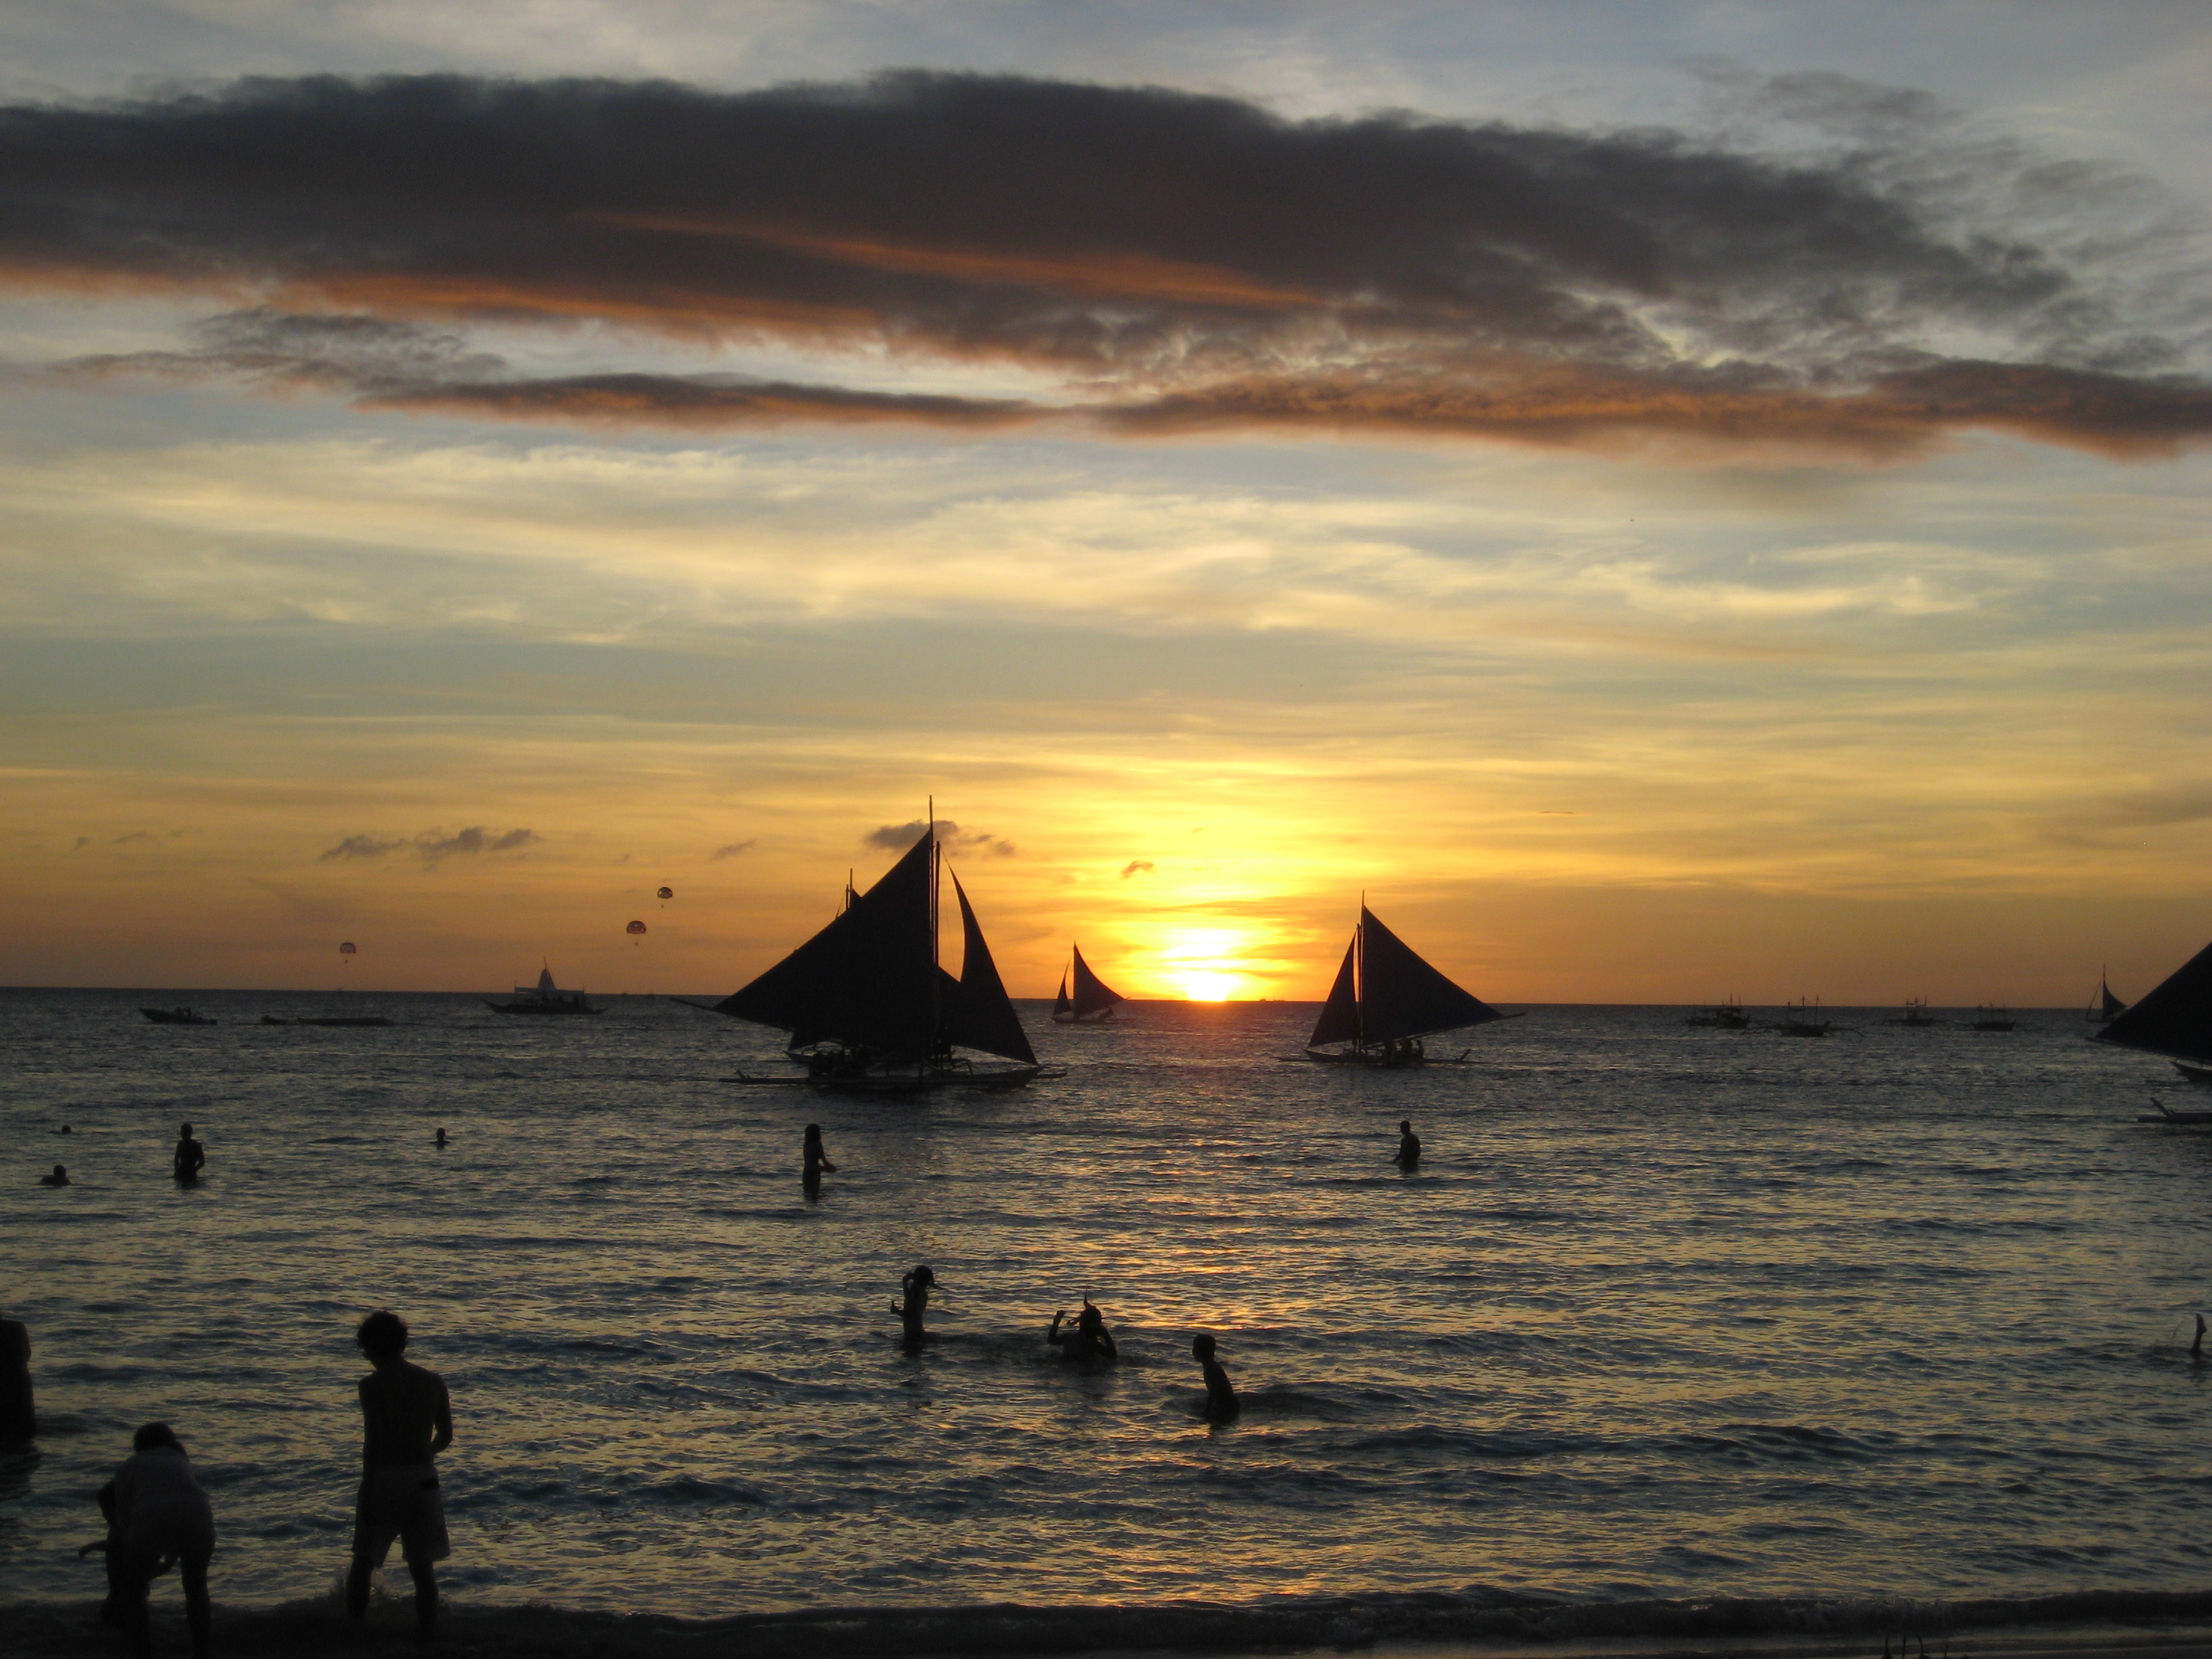 Sunset in Boracay Island, Philippines